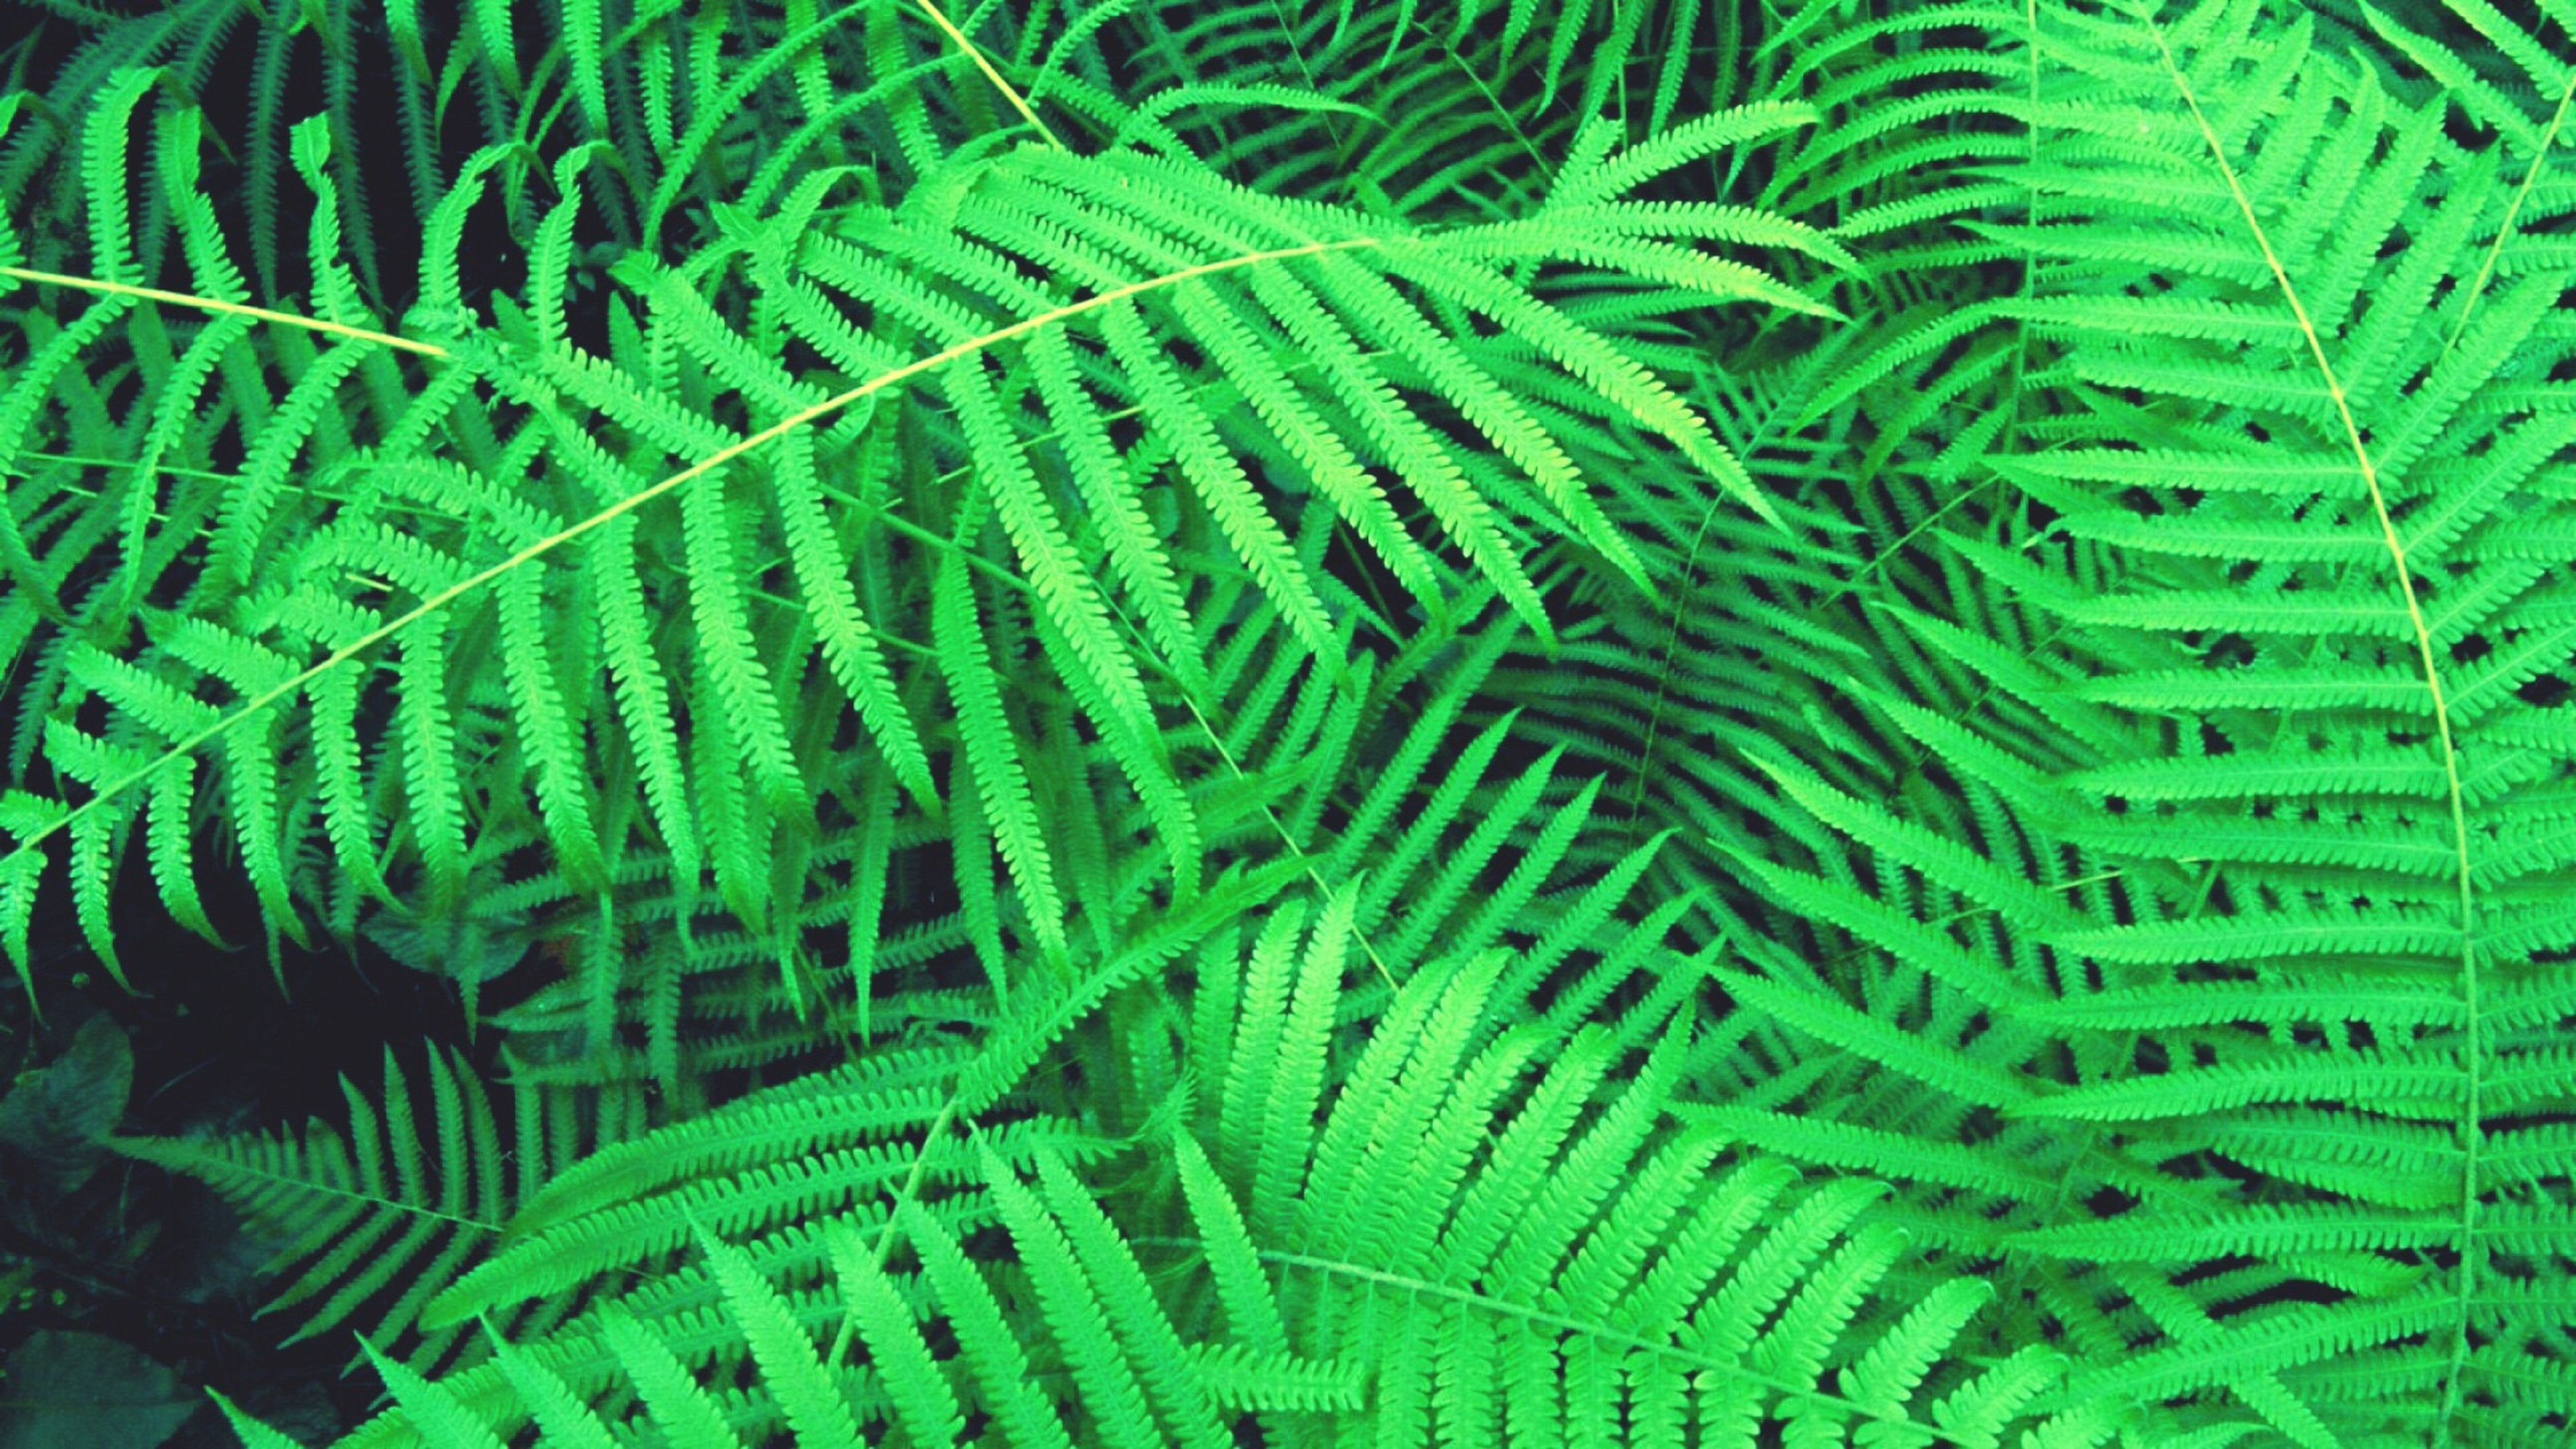 full frame, green color, backgrounds, close-up, growth, leaf, fern, nature, plant, beauty in nature, outdoors, freshness, fragility, lush foliage, green, day, tranquility, frond, botany, no people, scenics